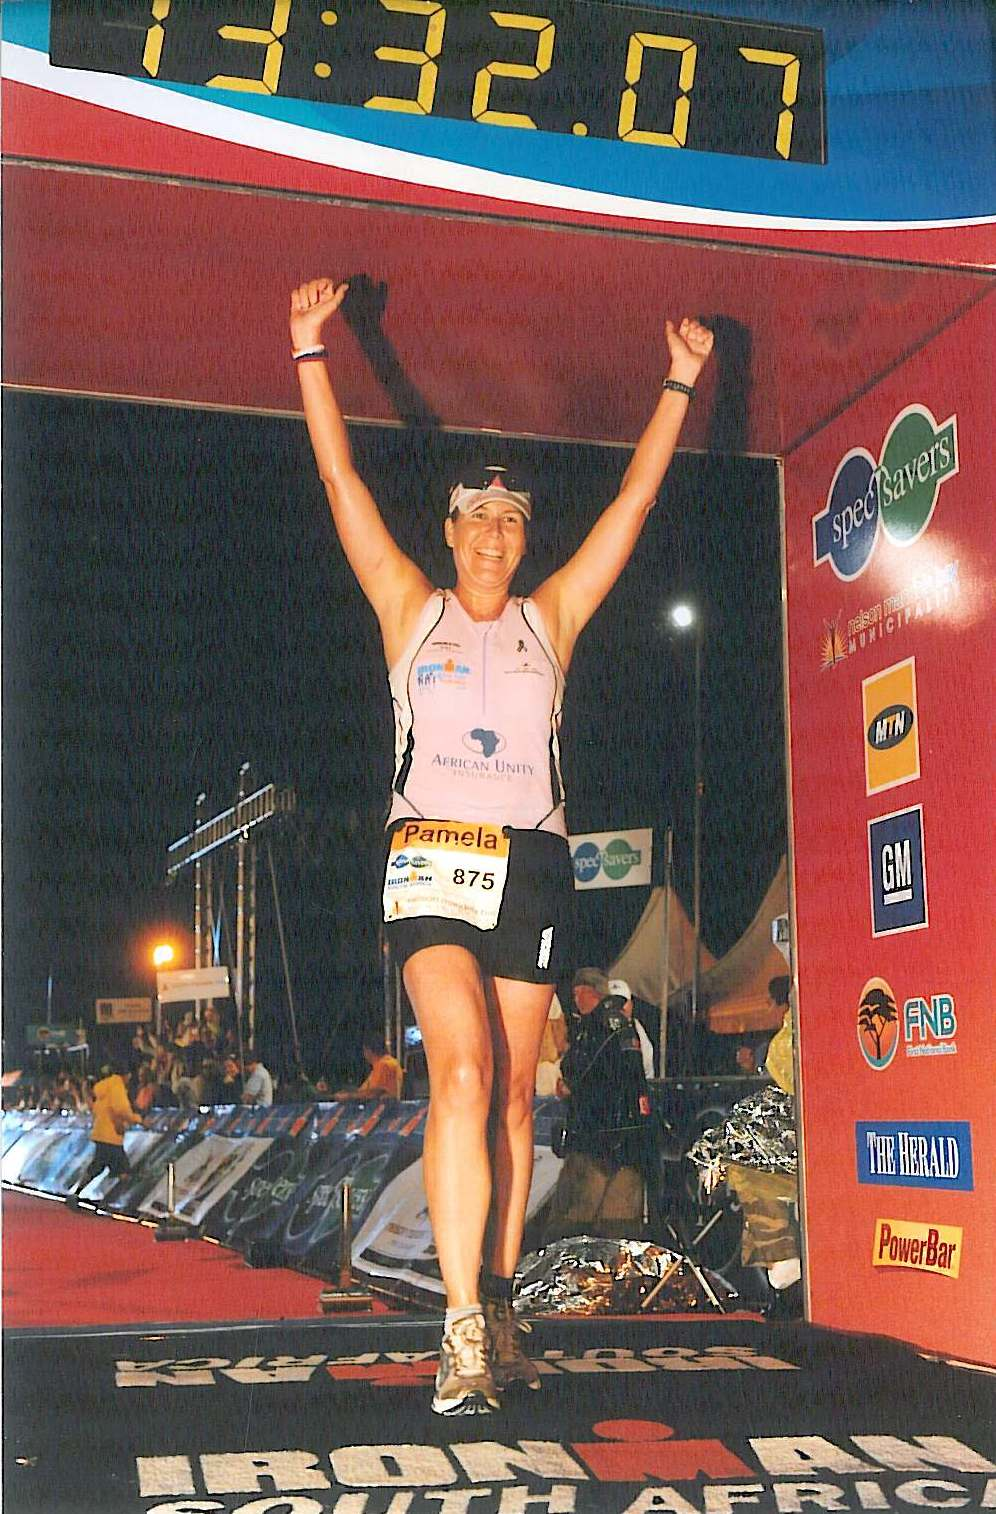 Ironman South Africa 2009!